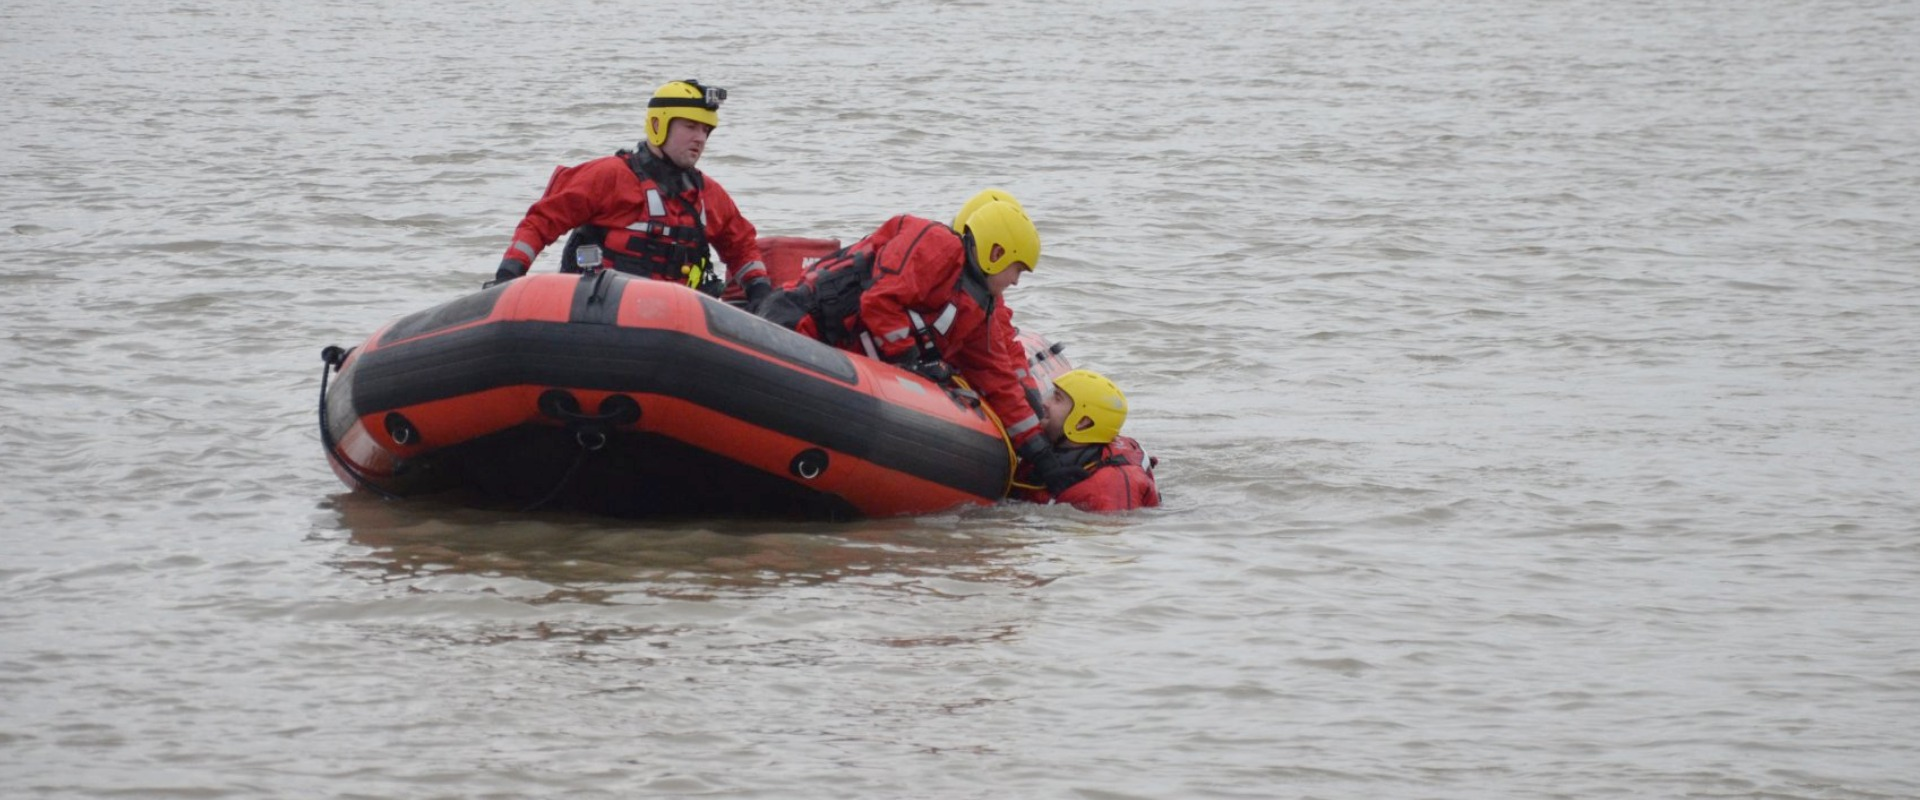 Warrior Fire & Rescue Service safety boat and water rescue photograph